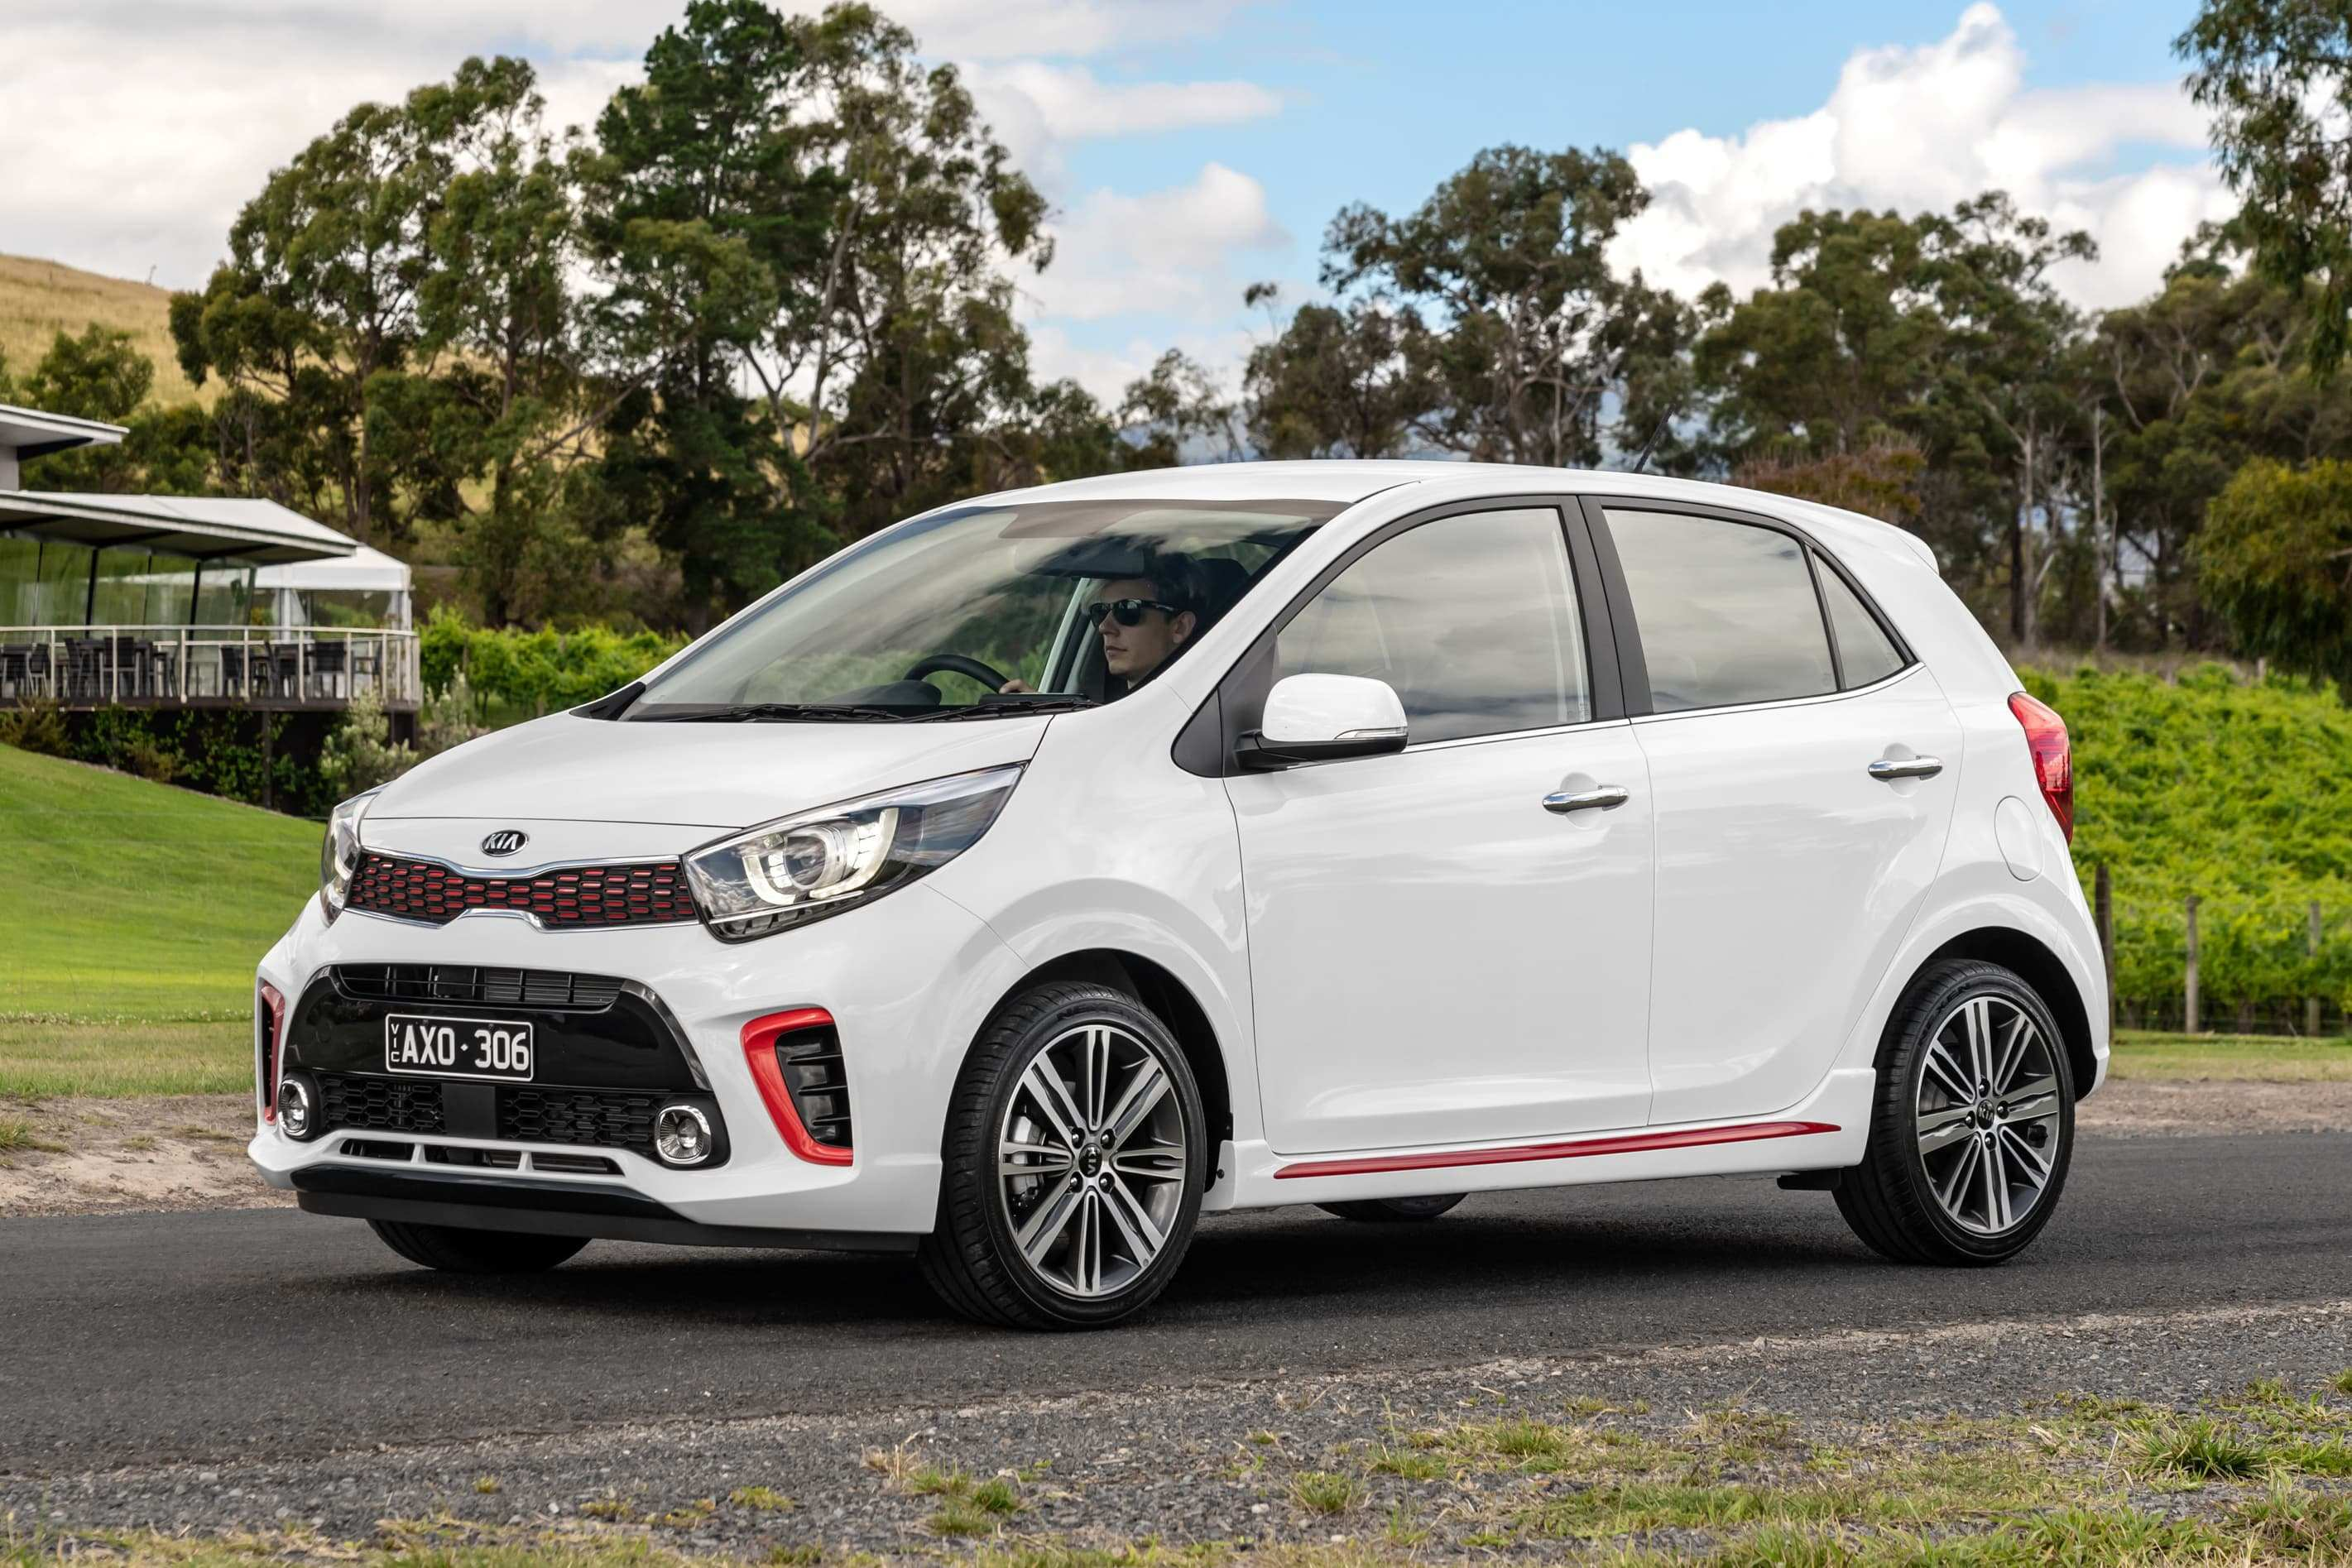 19 All New Kia Picanto 2019 Photos for Kia Picanto 2019